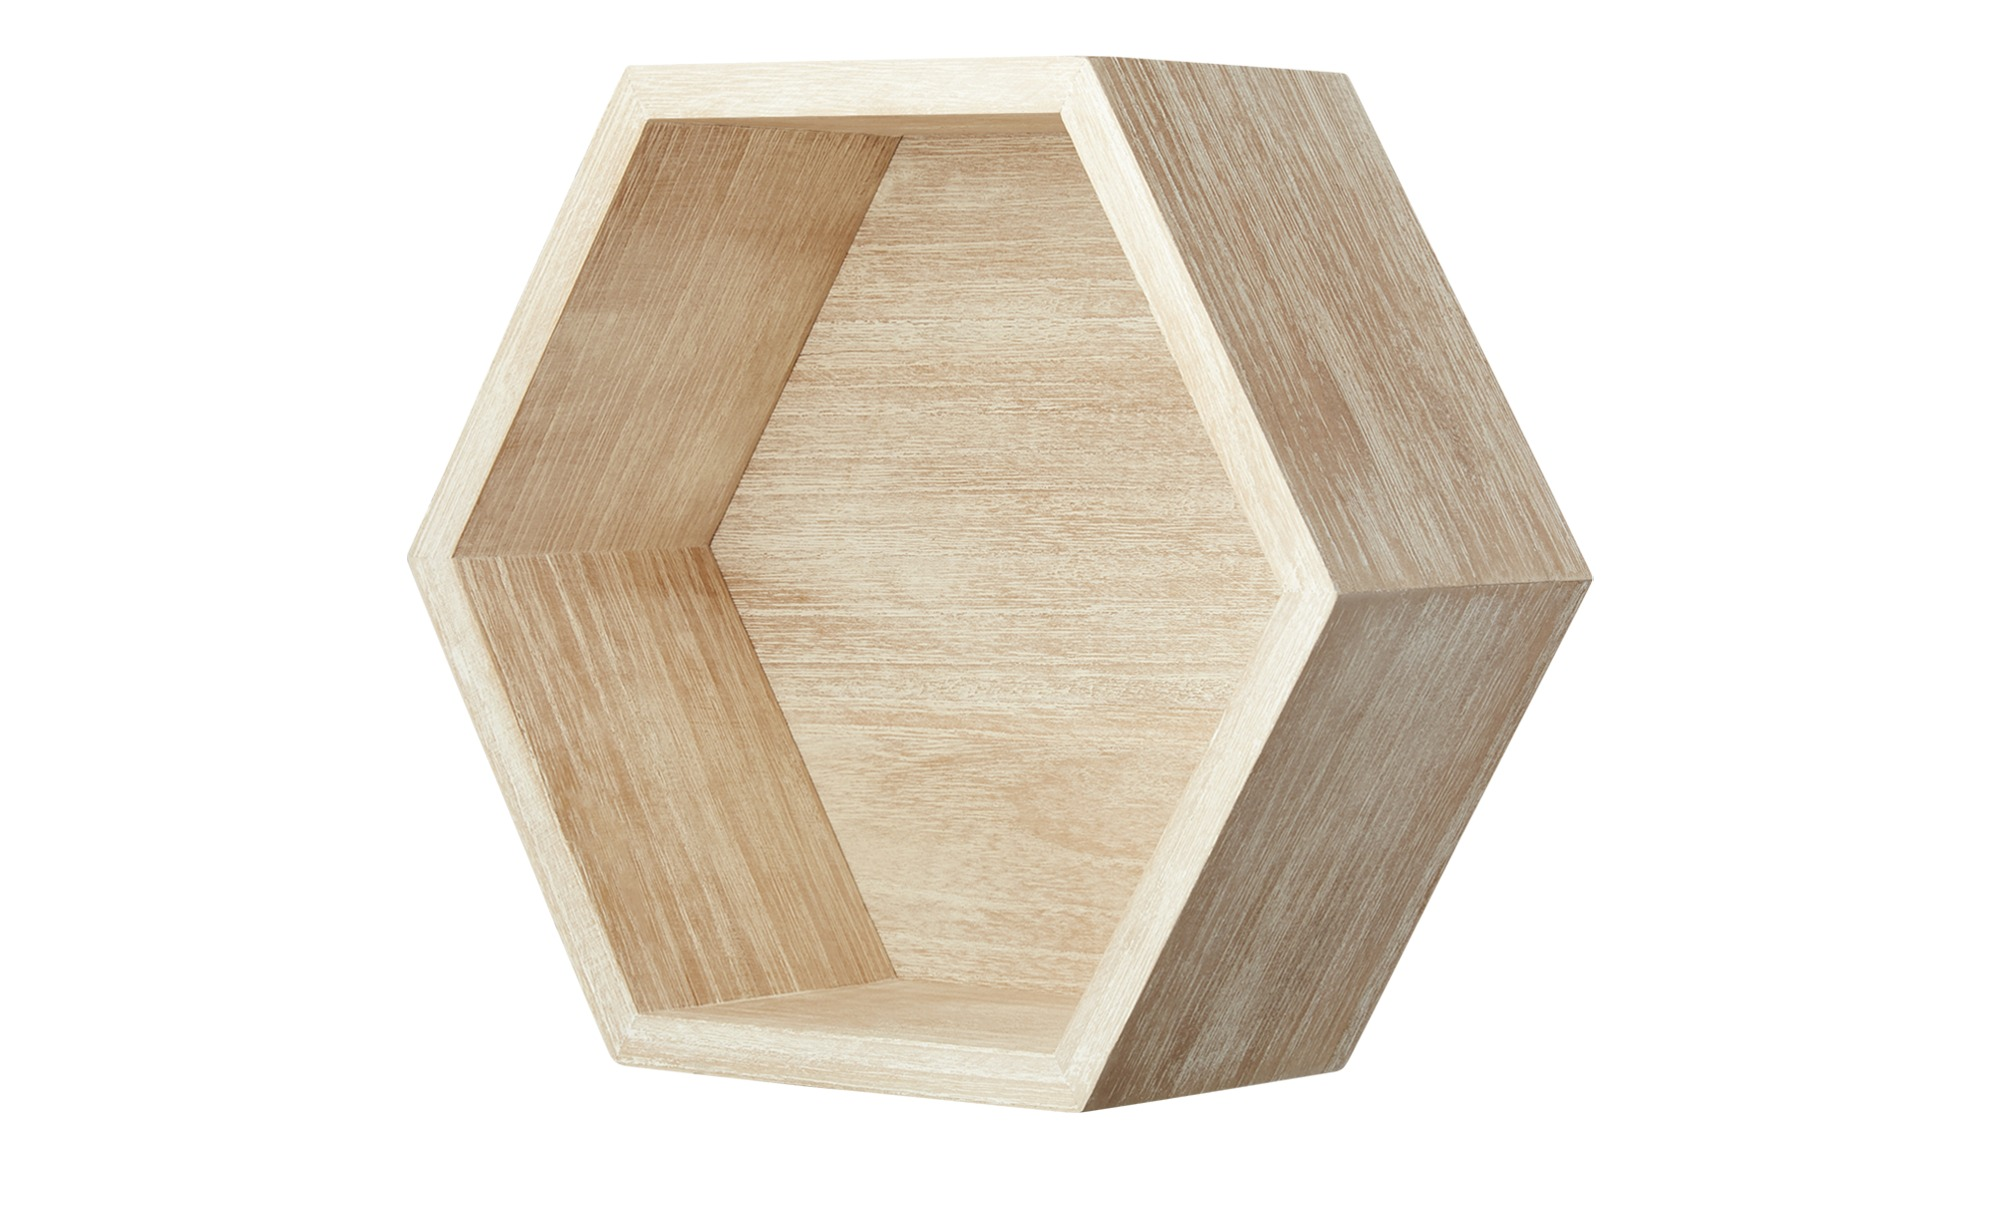 Wandregal Hexagon Paulownia Natur Mobel Hoffner